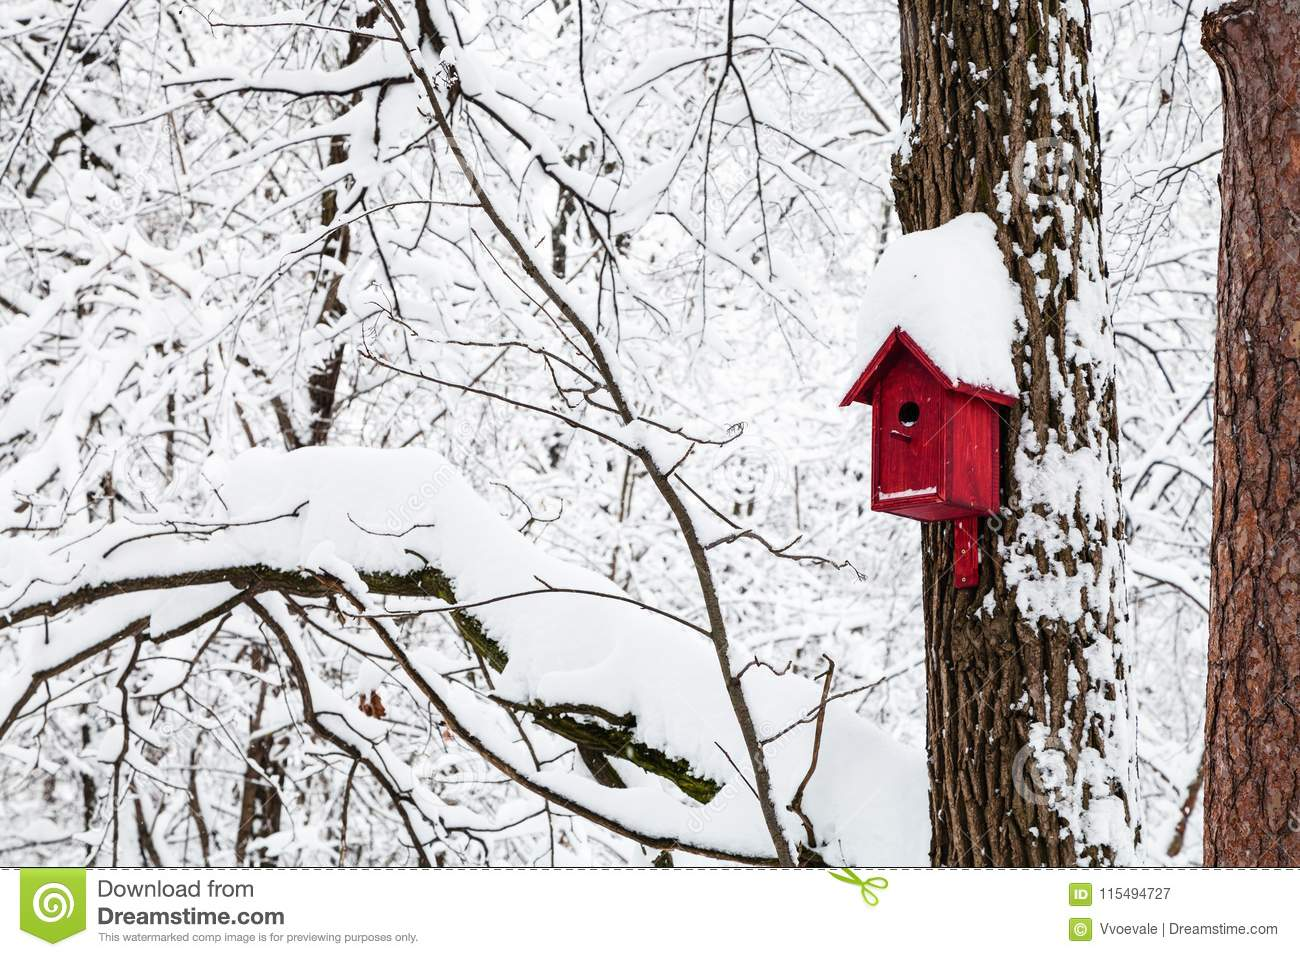 red bird house in winter forest